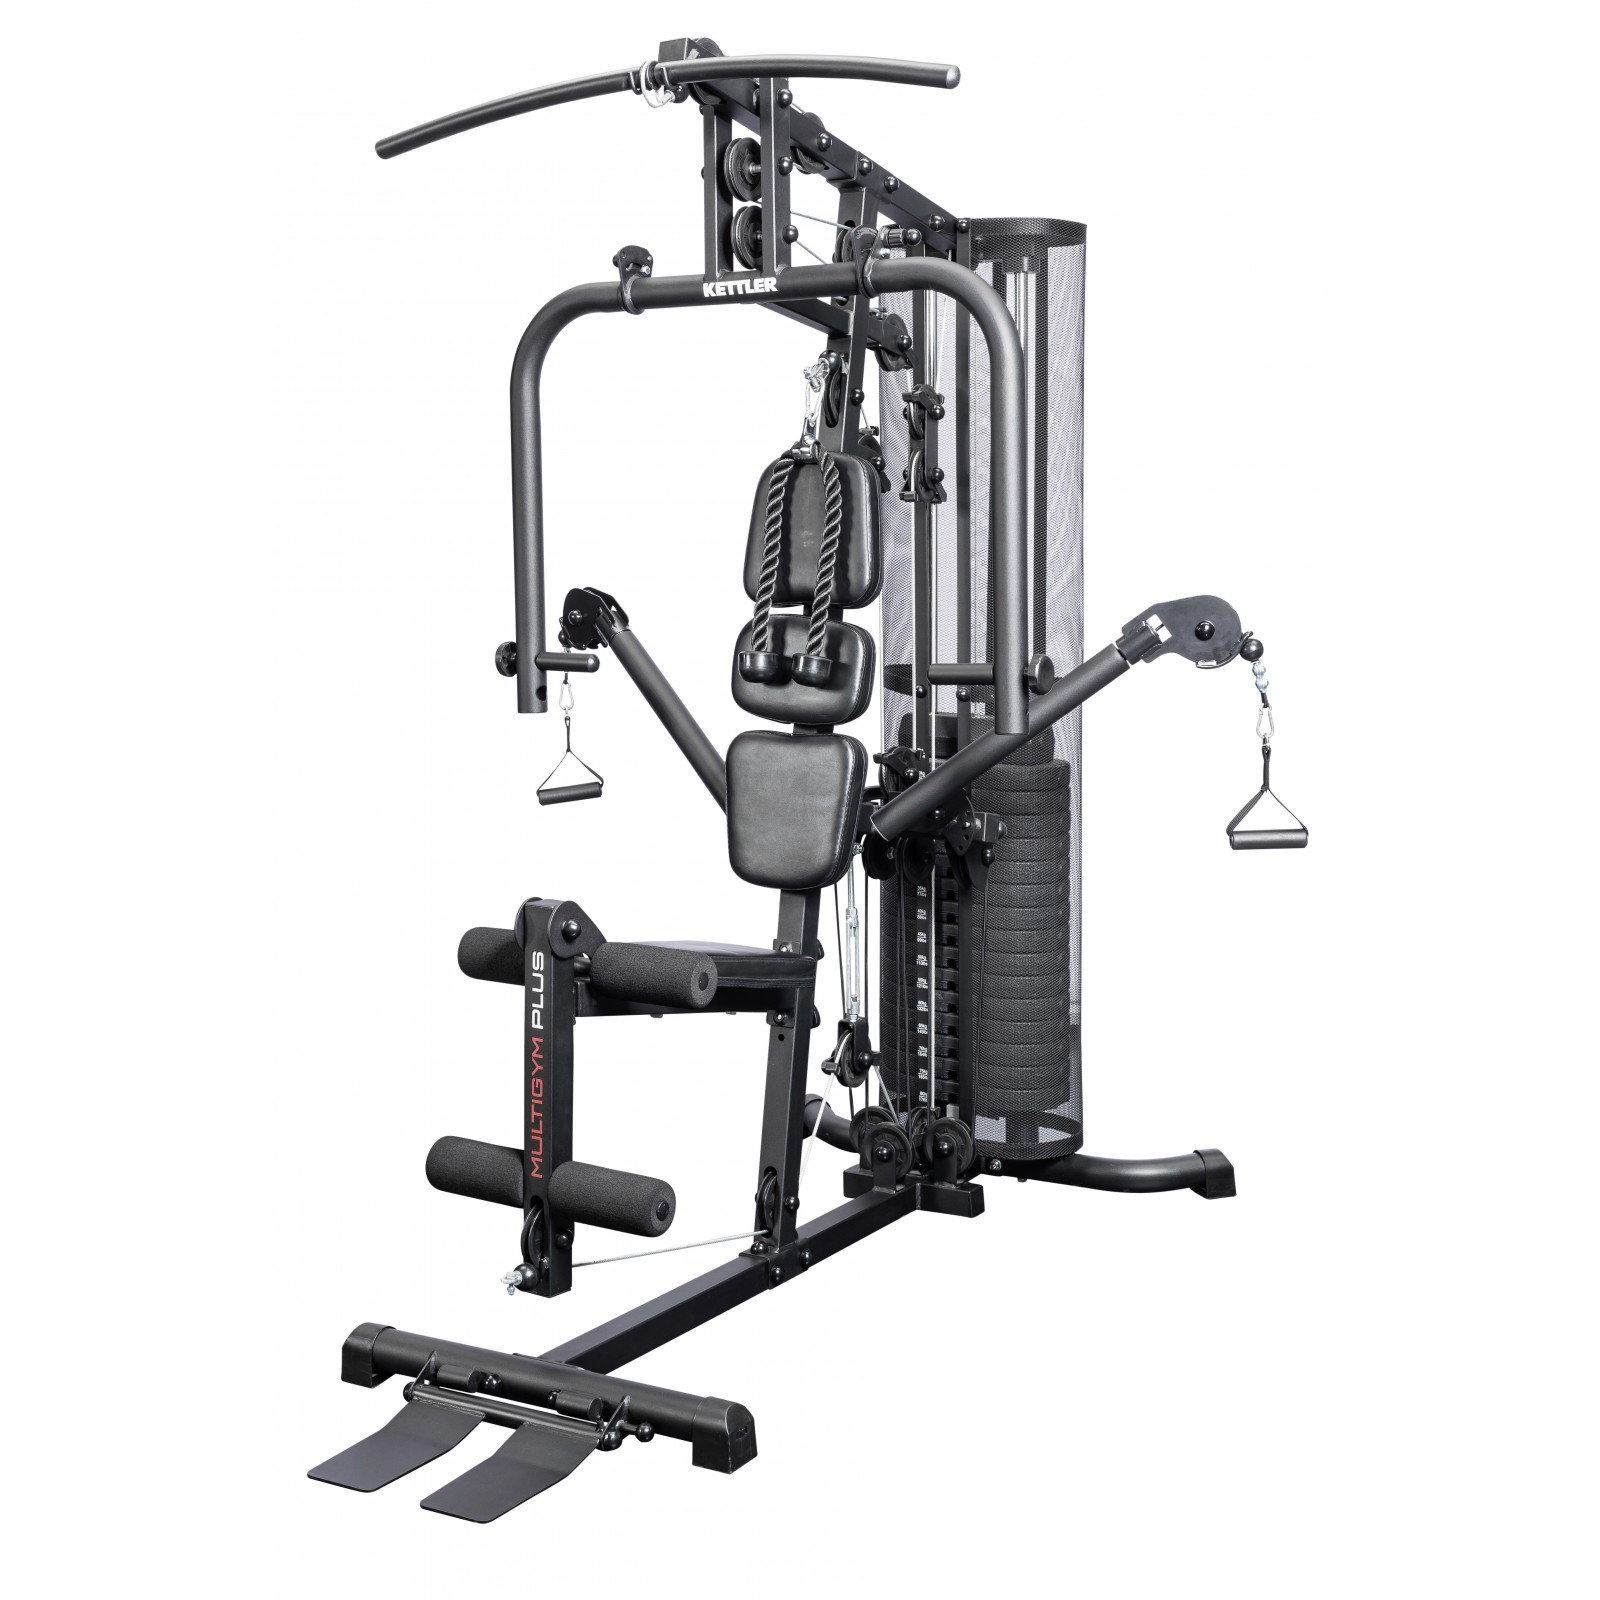 Kettler Fitness Kettler Multigym Plus Buy With 13 Customer Ratings Sport